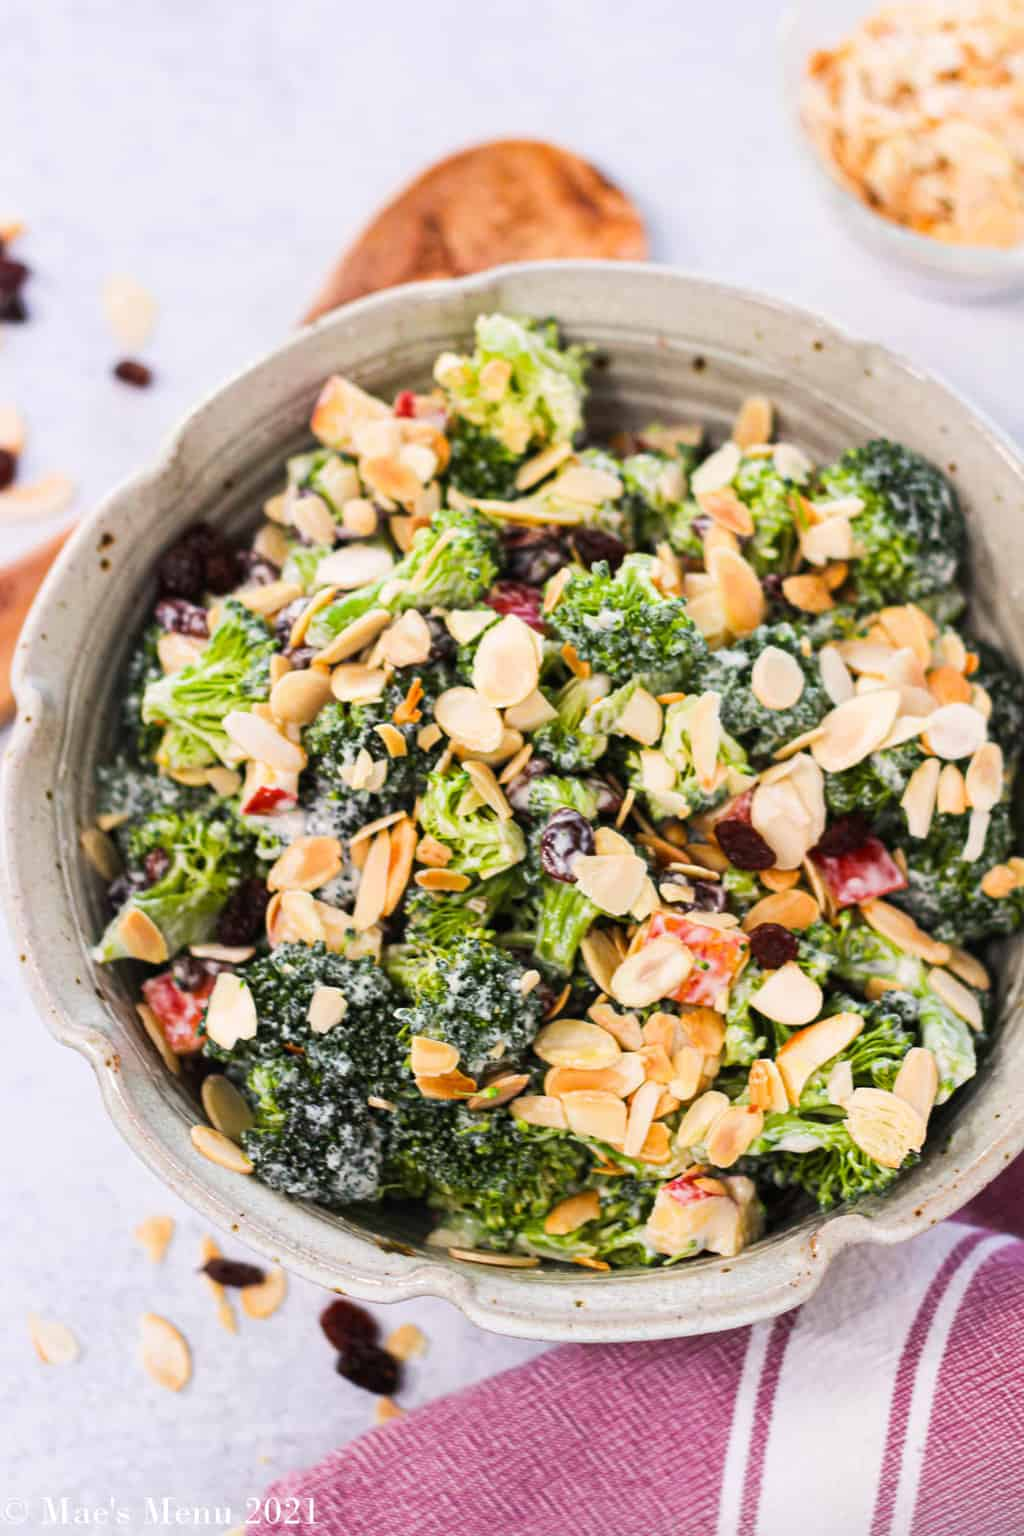 An up close over head shot of a bowl of broccoli raisin salad in a stone color bowl